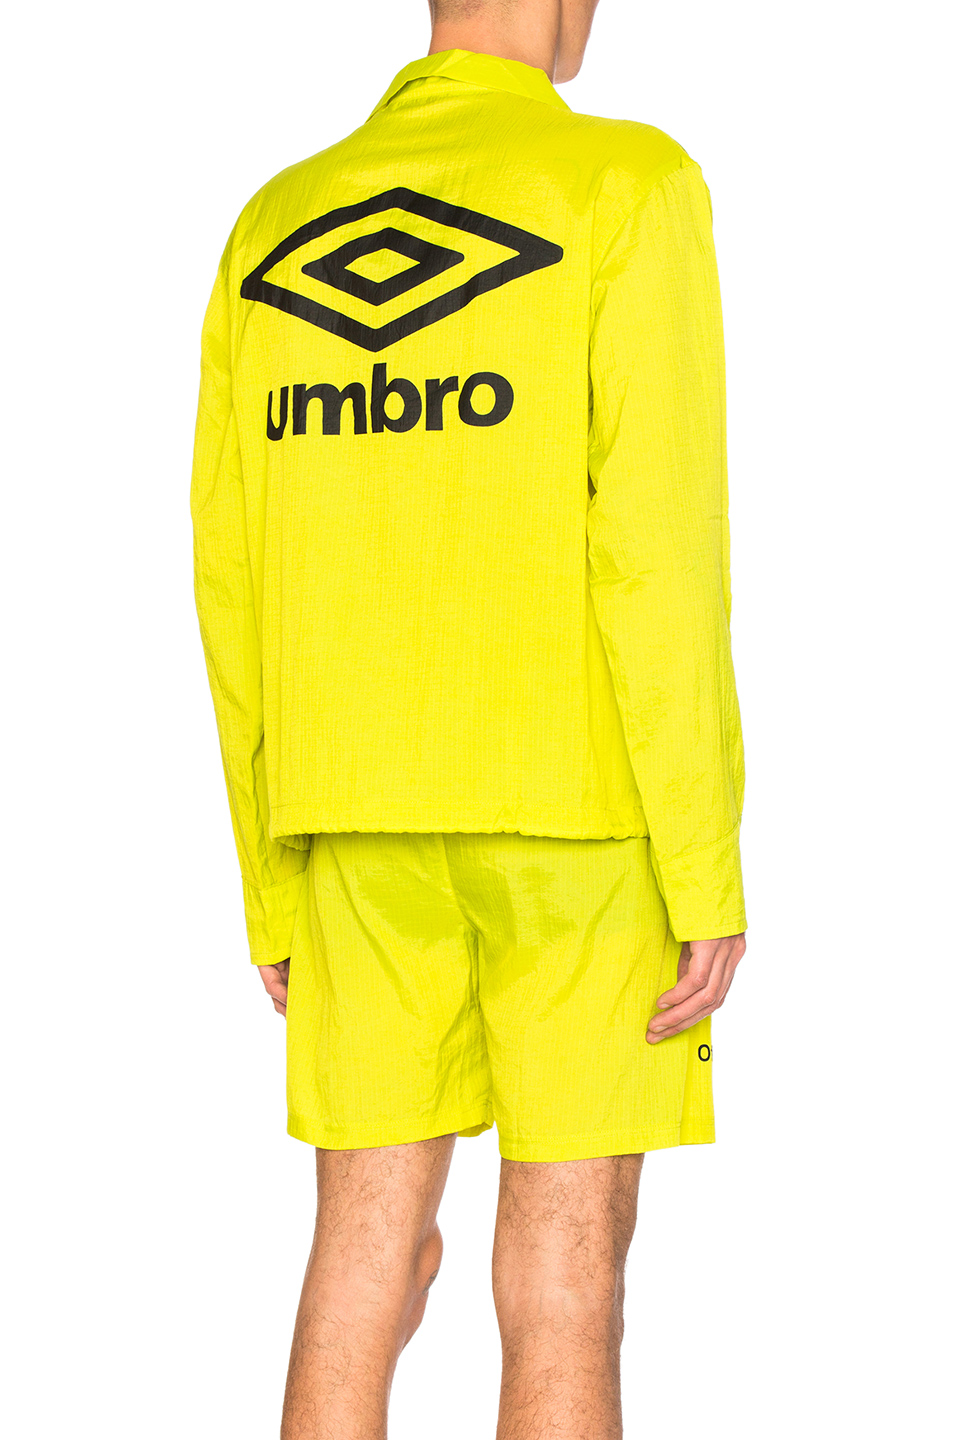 OFF-WHITE x Umbro Jacket in Green,Neon